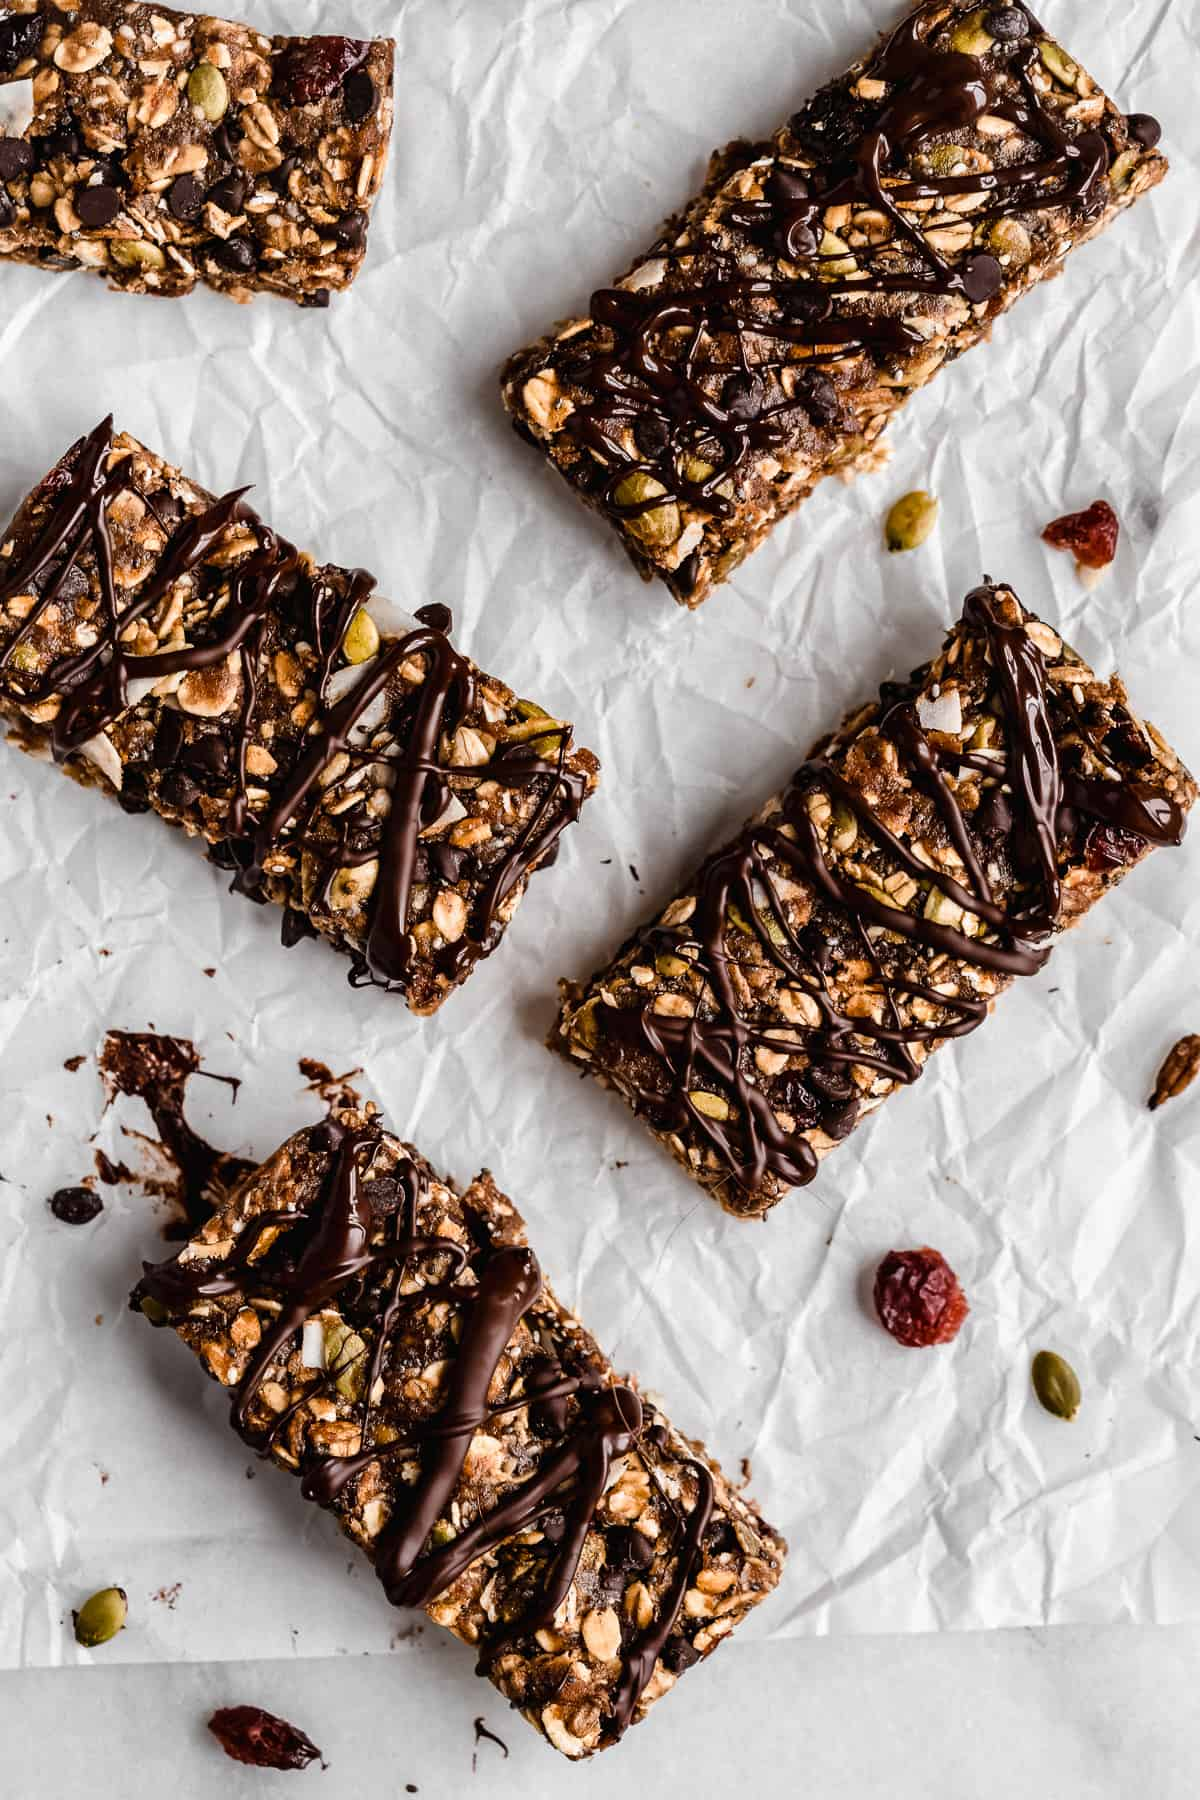 Overhead photo of several Nut-free Chocolate Granola Bars arranged on white parchment paper.